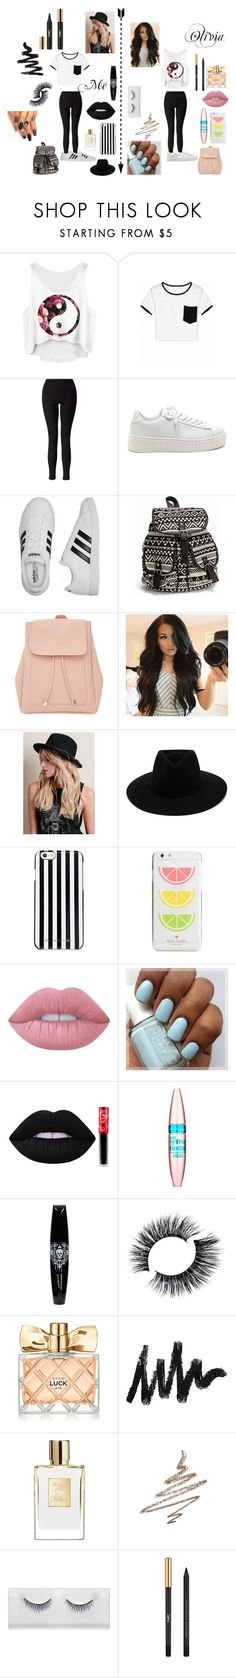 """""""School w/Olivia"""" by madeline-lemon ❤ liked on Polyvore featuring Miss Selfridge, adidas, NLY Accessories, New Look, rag & bone, MICHAEL Michael Kors, Kate Spade, Lime Crime, Maybelline and Avon"""